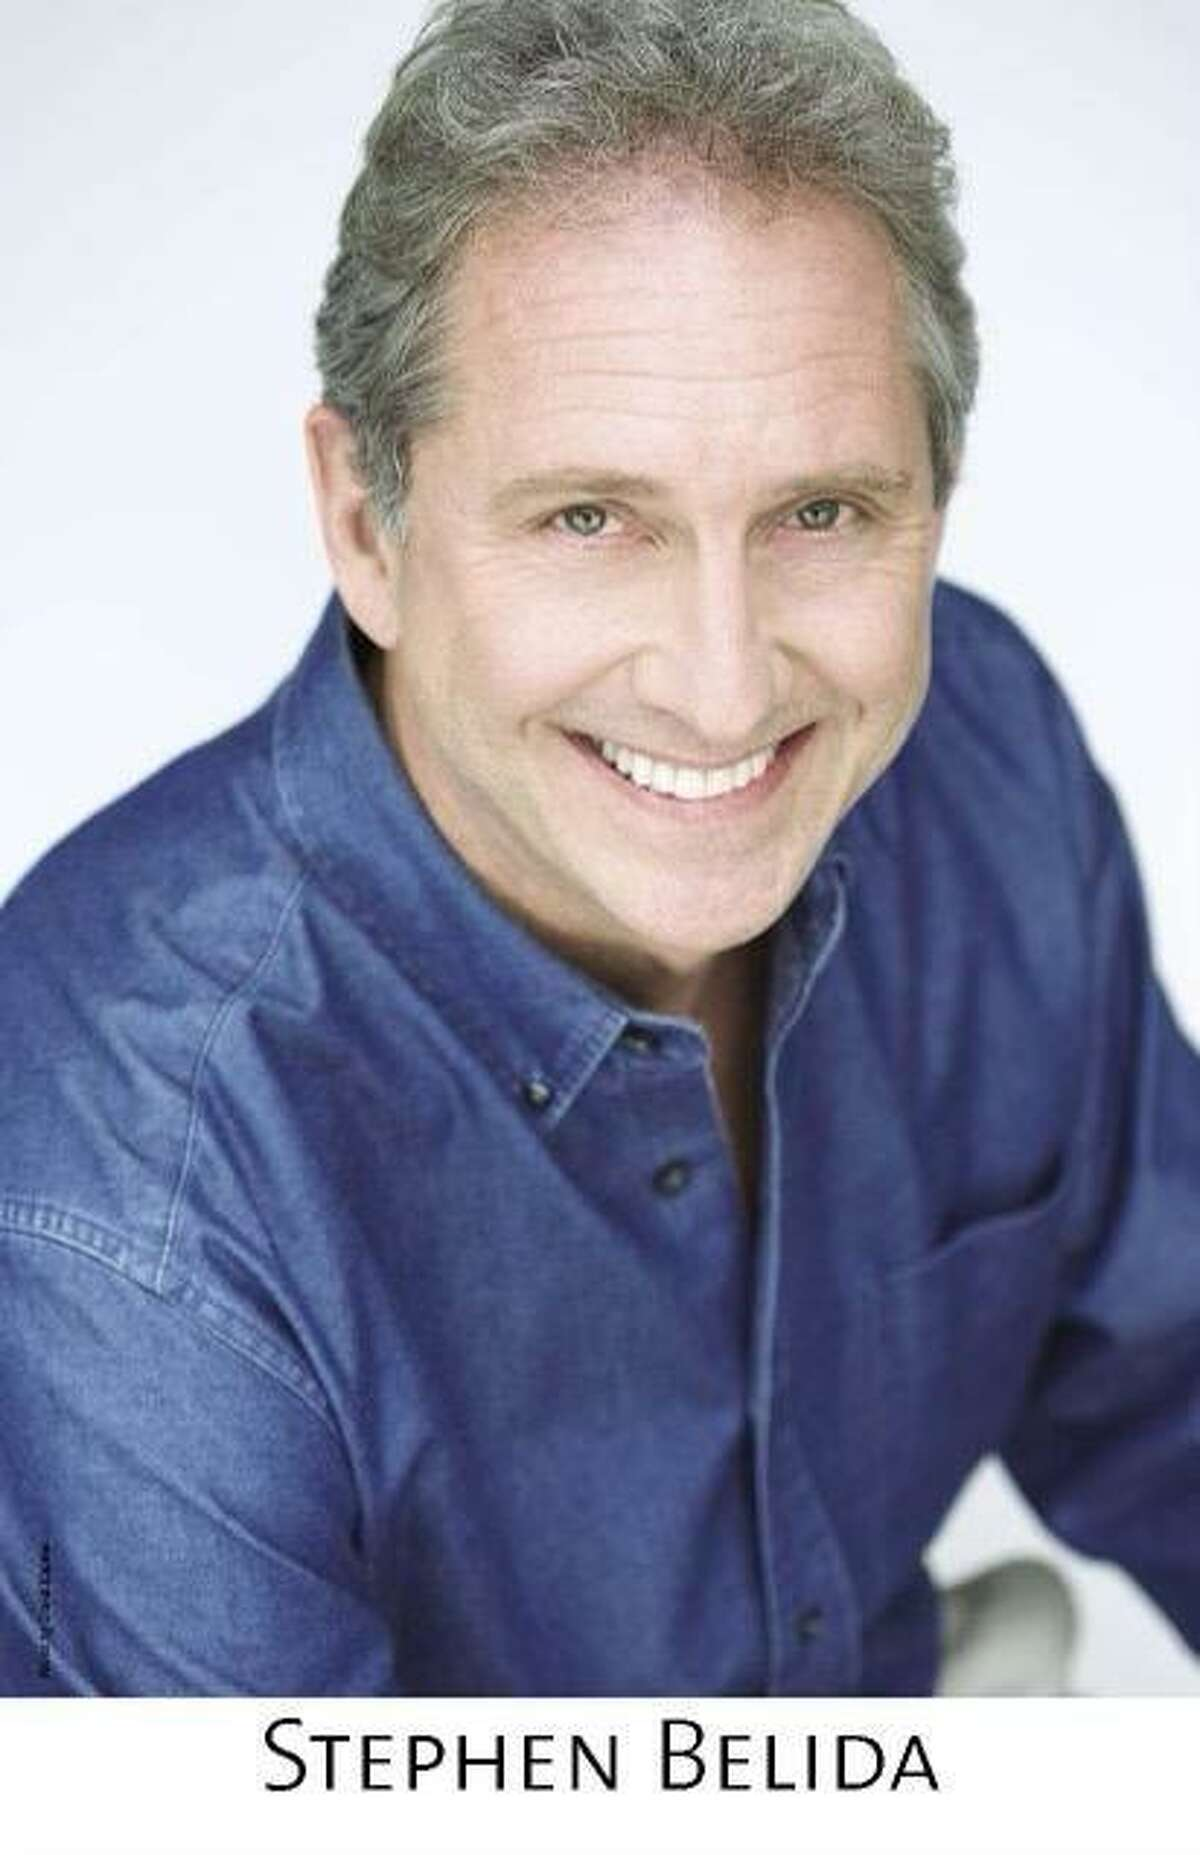 Steve Belida, a Broadway actor and producer, will take part in a fundraiser show called 'Love Letters' from Oct. 1 to Oct. 3 in Brookfield.